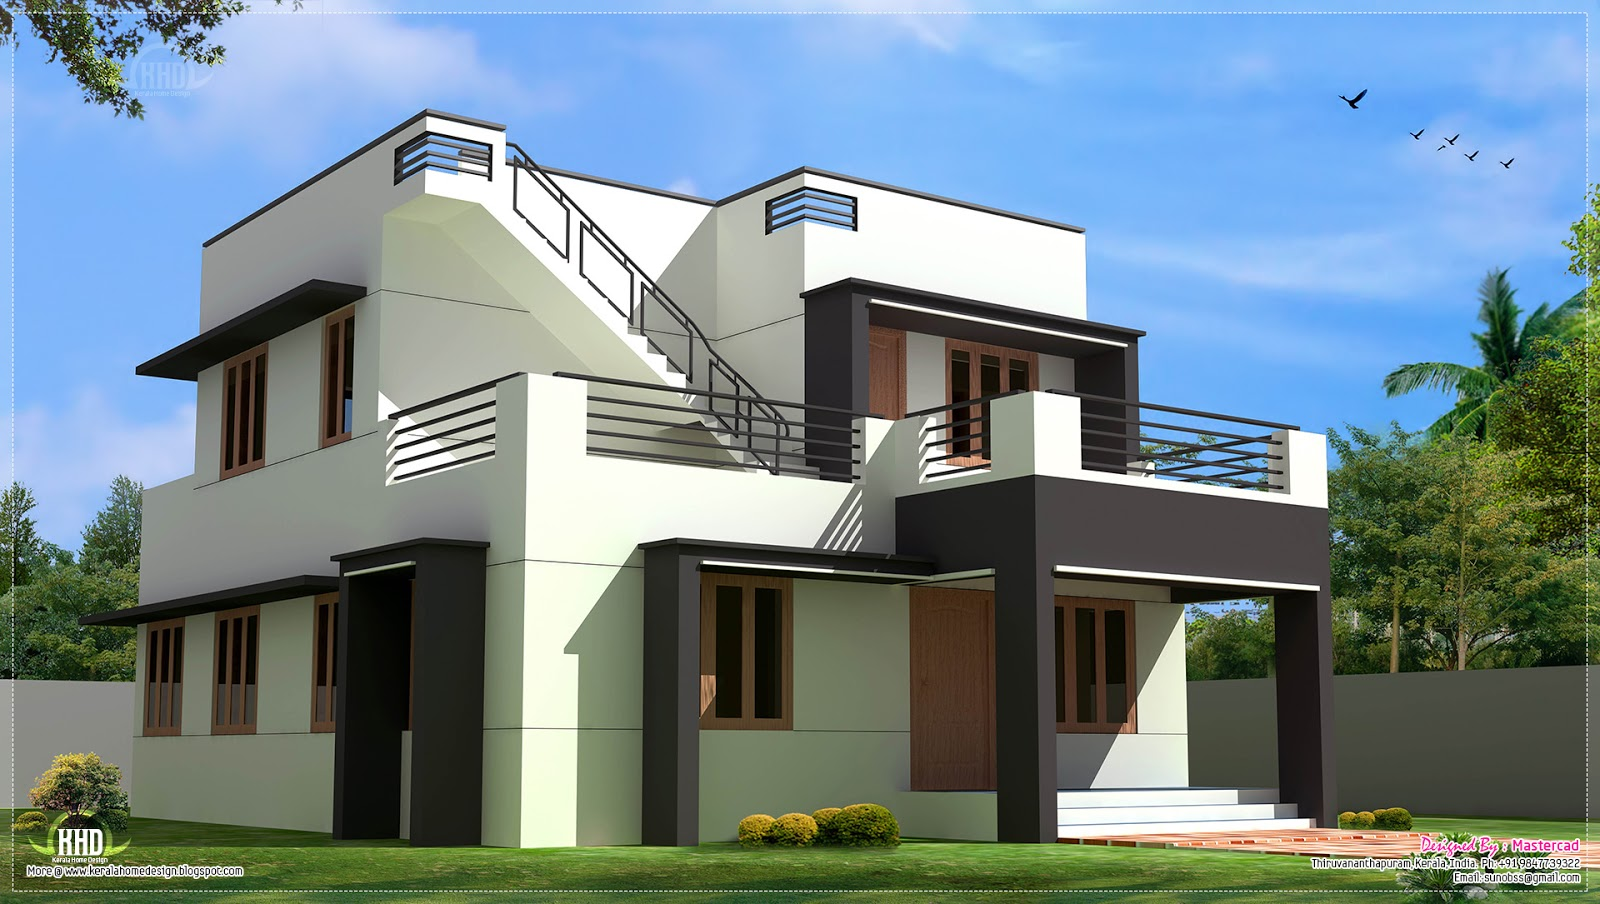 Modern house design in 1700 home kerala plans for Modern house plans for 1600 sq ft